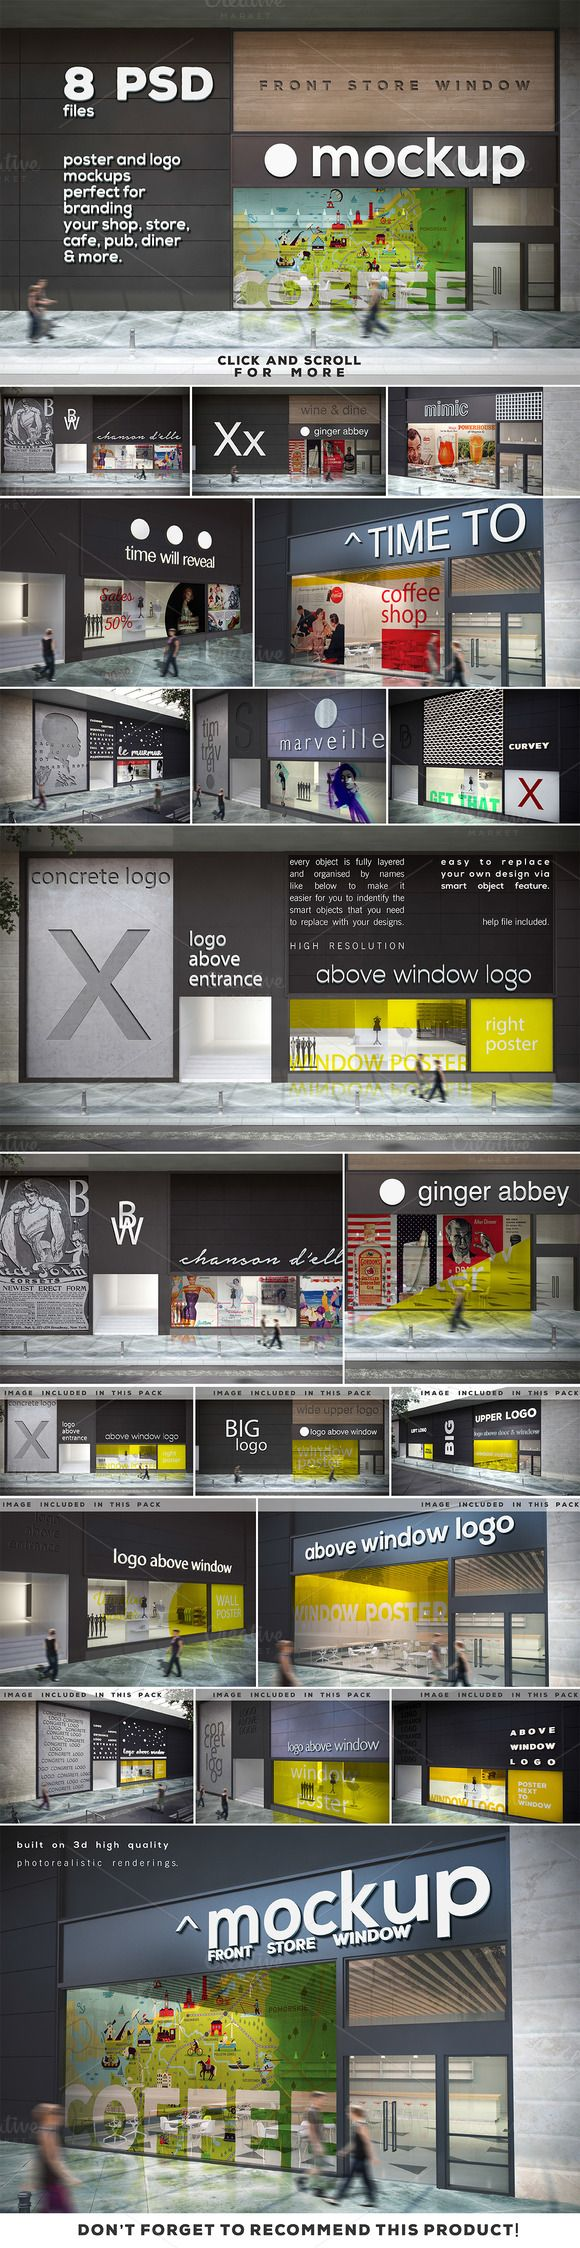 Poster & Logo Mock-up Vol.5 - Shop by DESIGNbook on Creative Market